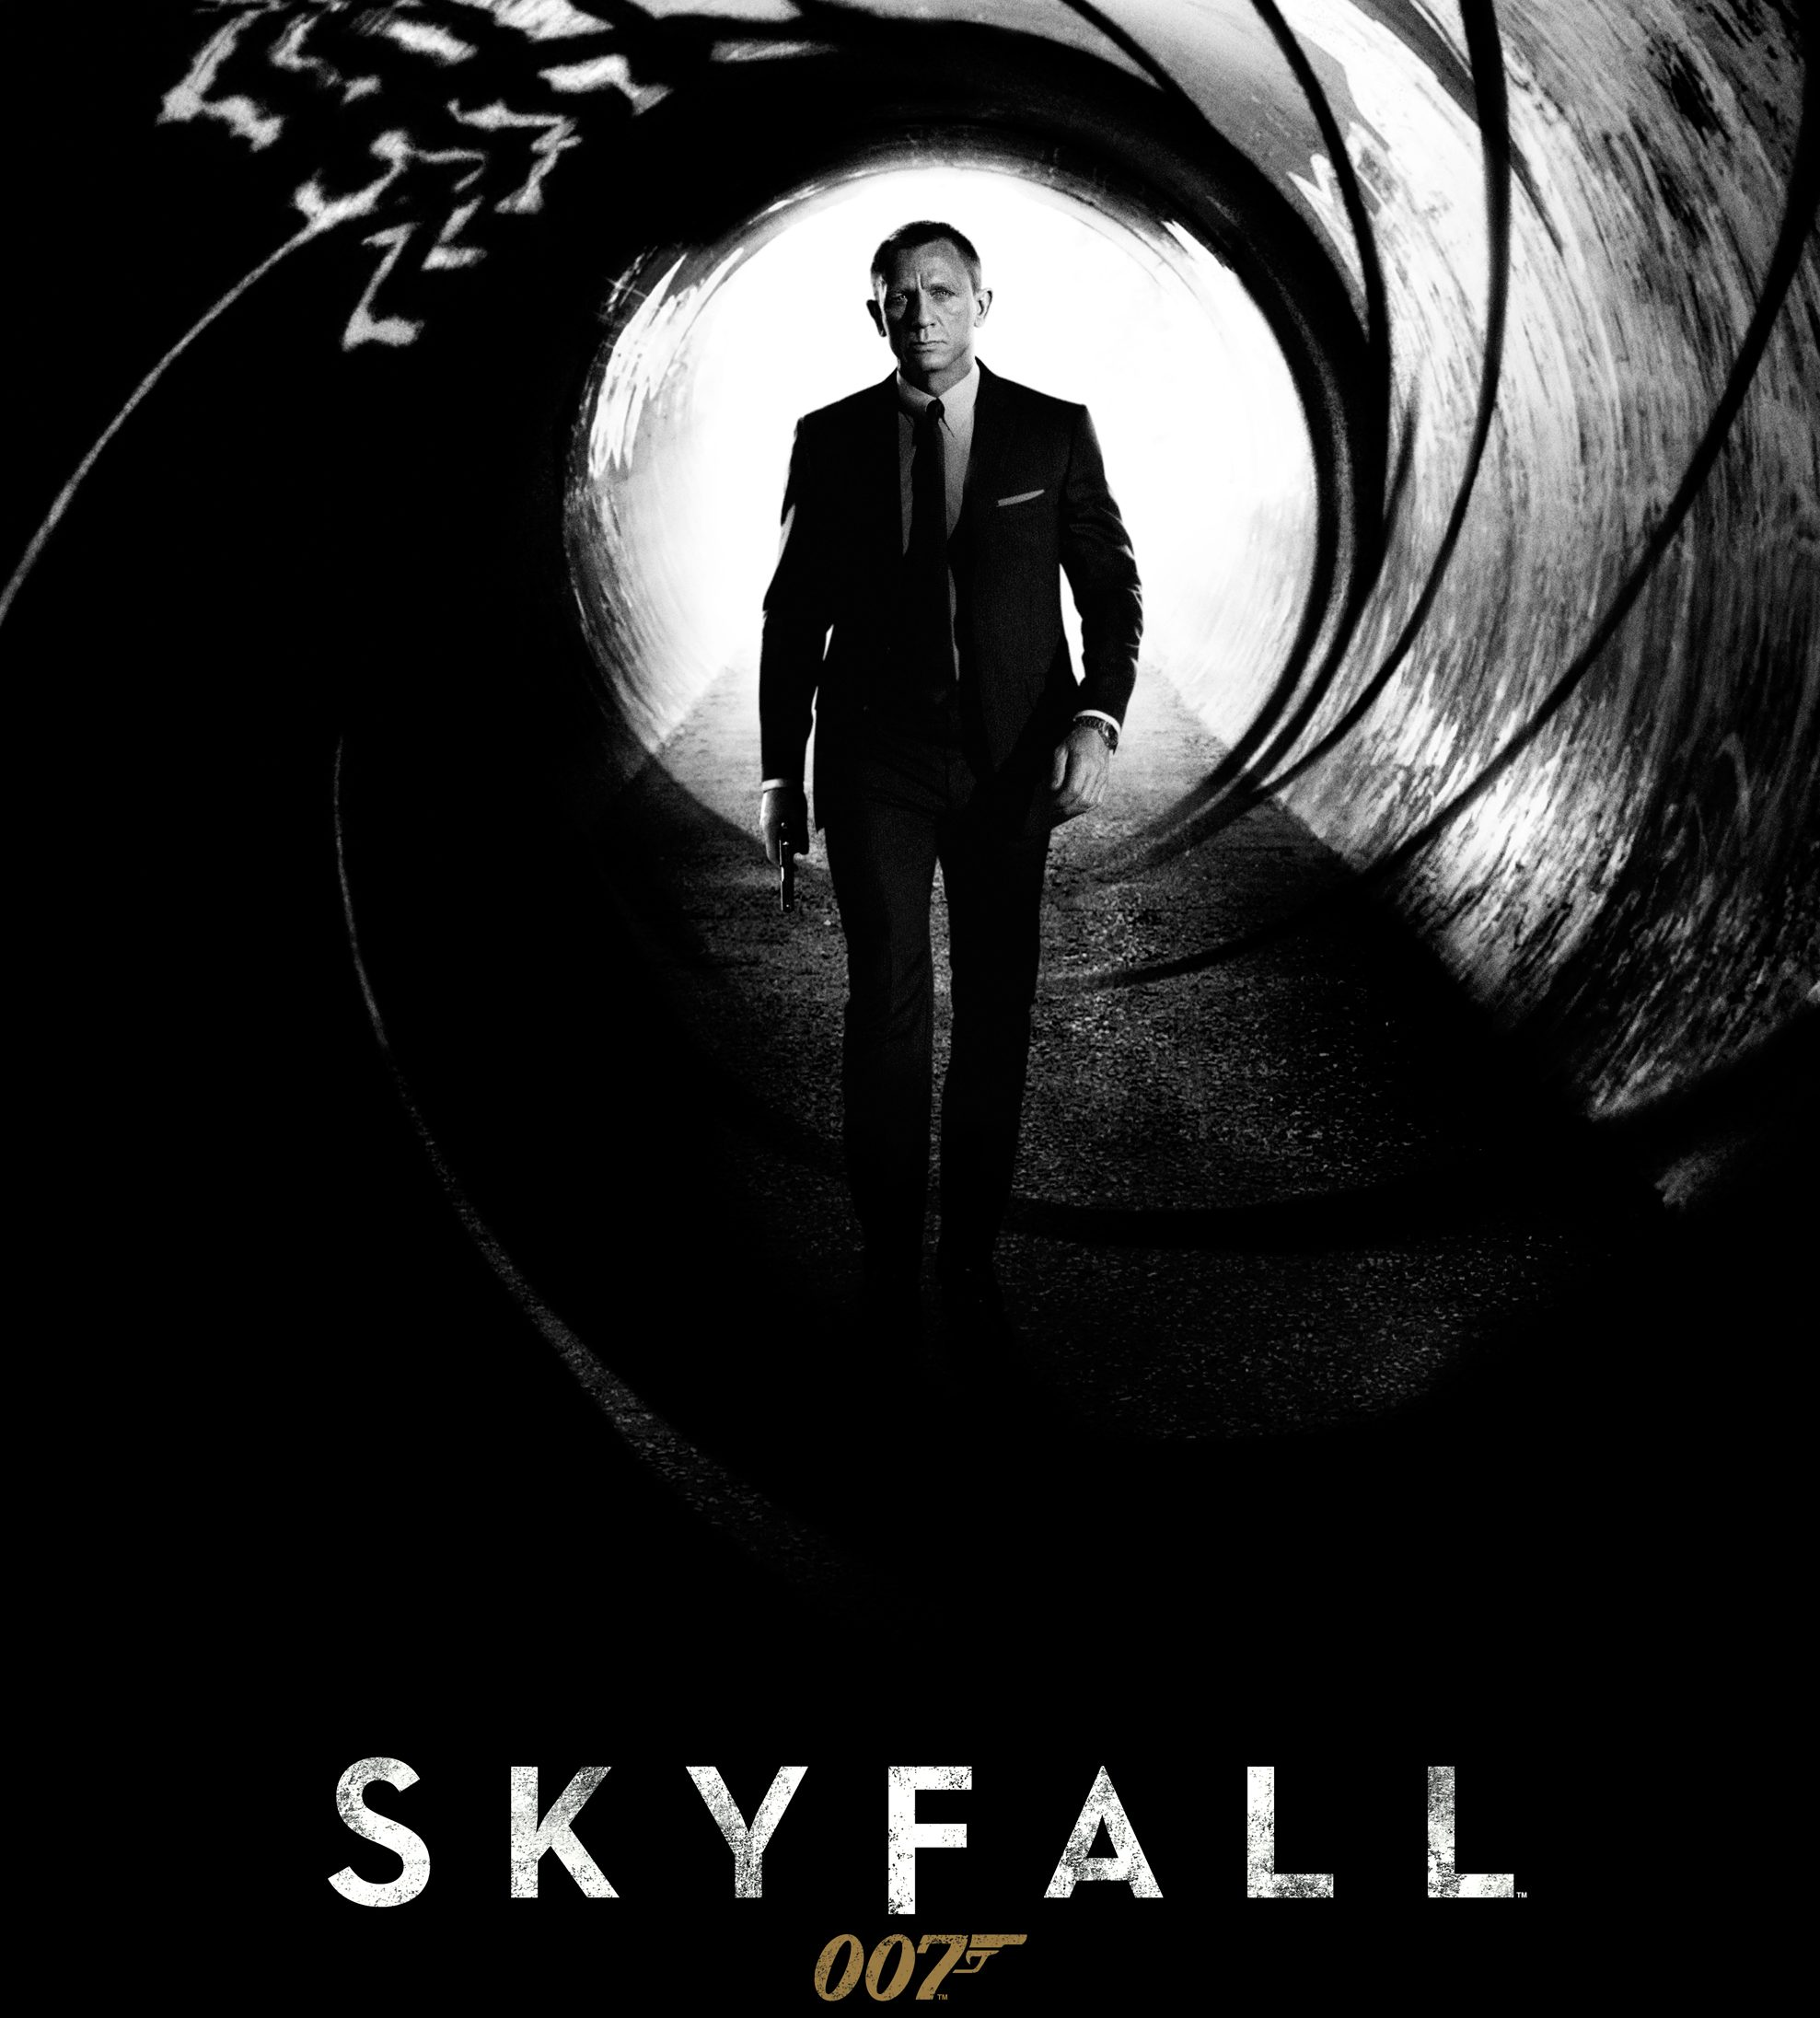 SKY DIGI ONLN TSR 1SHT 1 0514 RGB 300 1 e1582707306738 11 Of The Best James Bond Movies (And 10 Of The Worst)